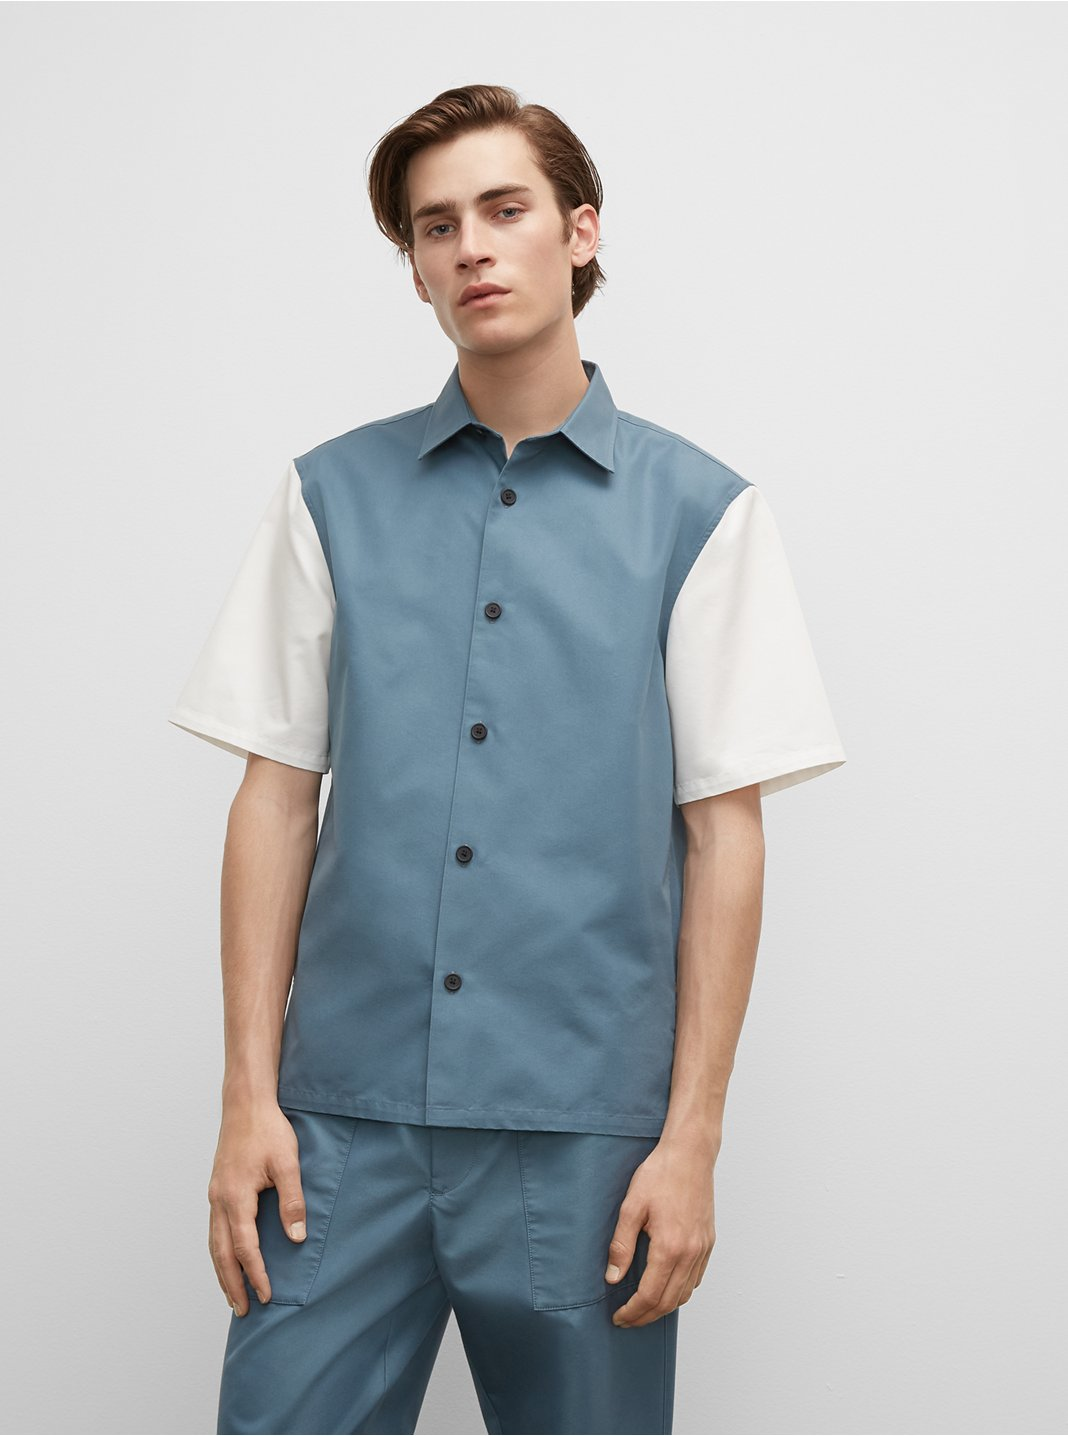 Colorblock Short Sleeve Standard Shirt